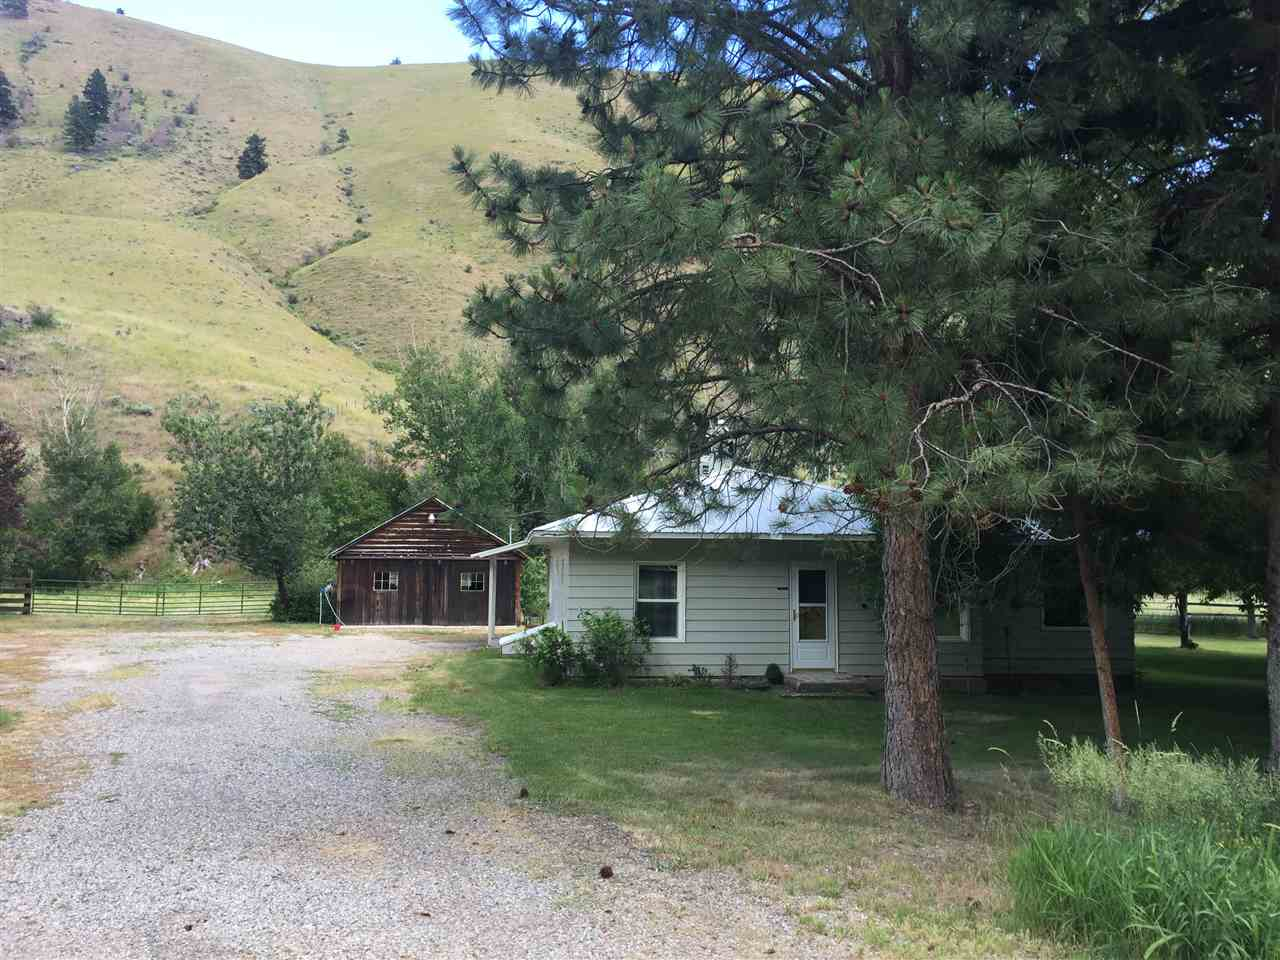 Single Family Home for Sale at 2147 Highway 93 North 2147 Highway 93 North North Fork, Idaho 83466